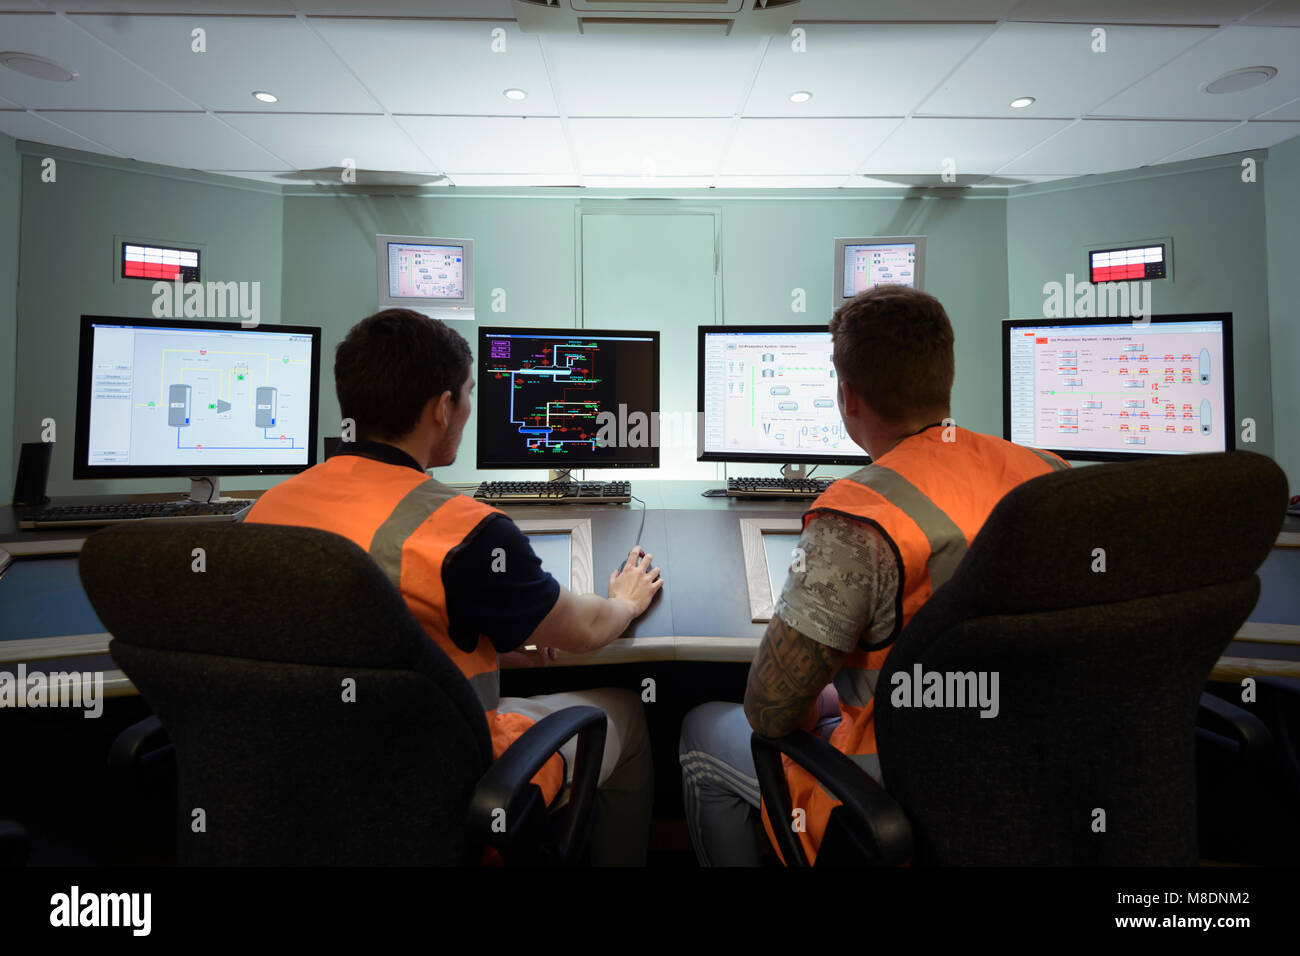 Apprentice engineers in industrial production facility training Stock Photo